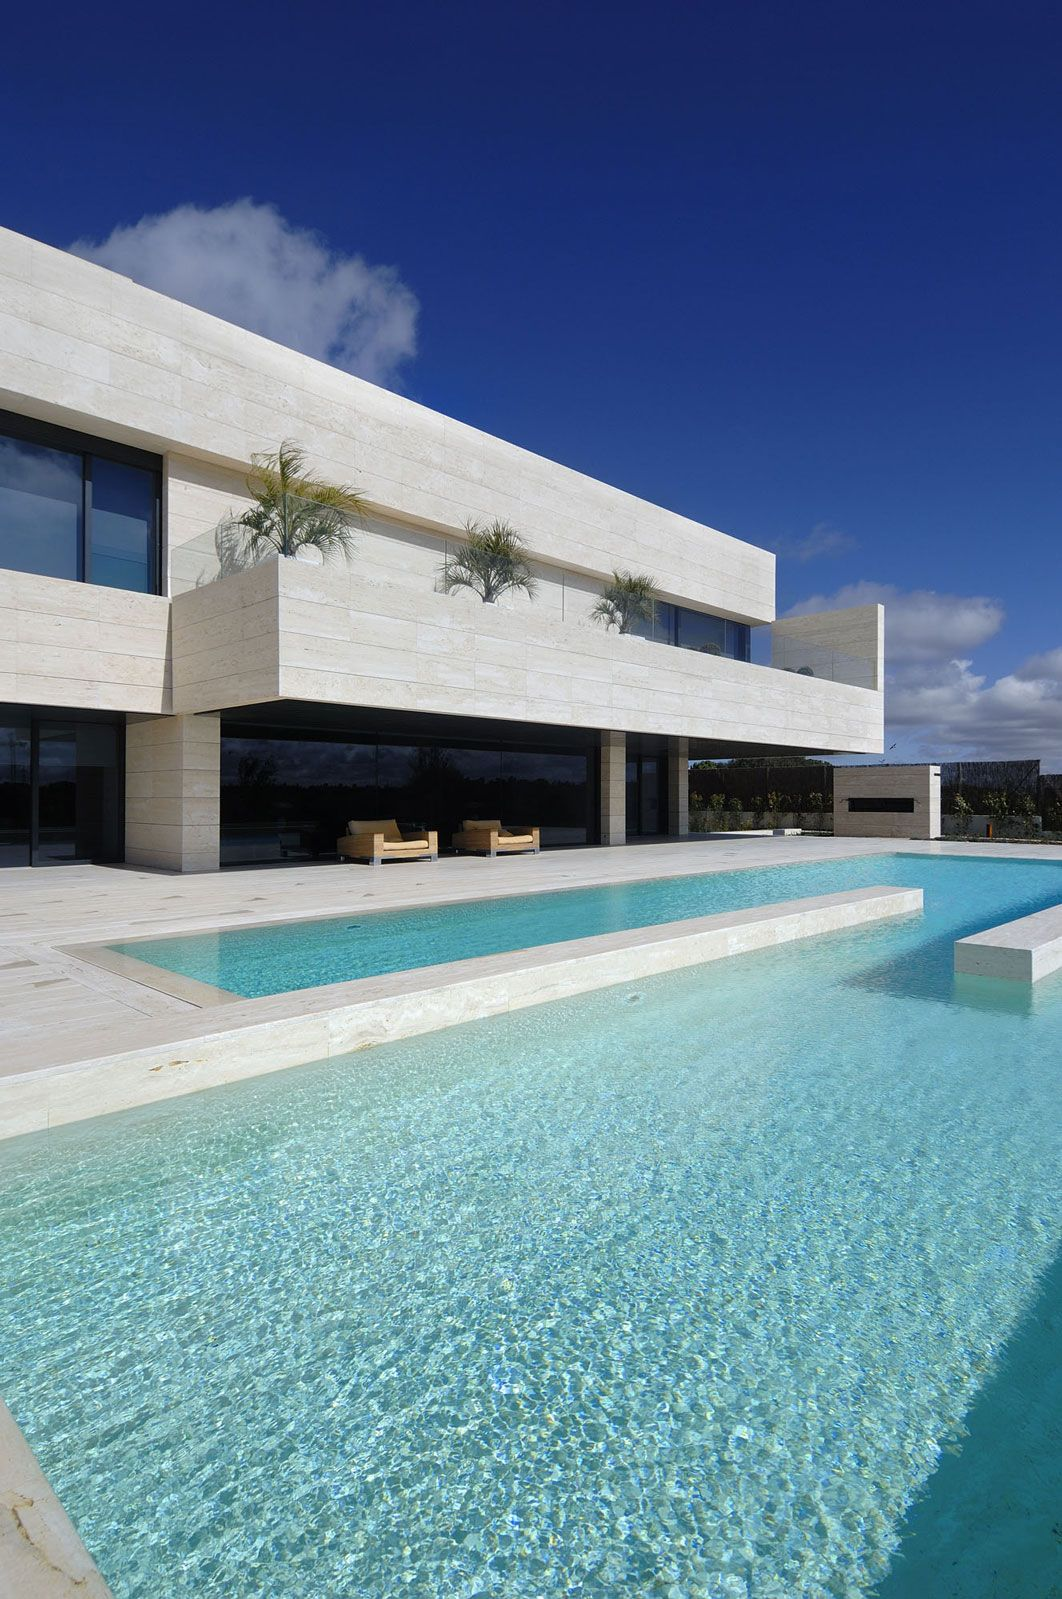 Desvre | Minimalist house, Pool designs and Infinity